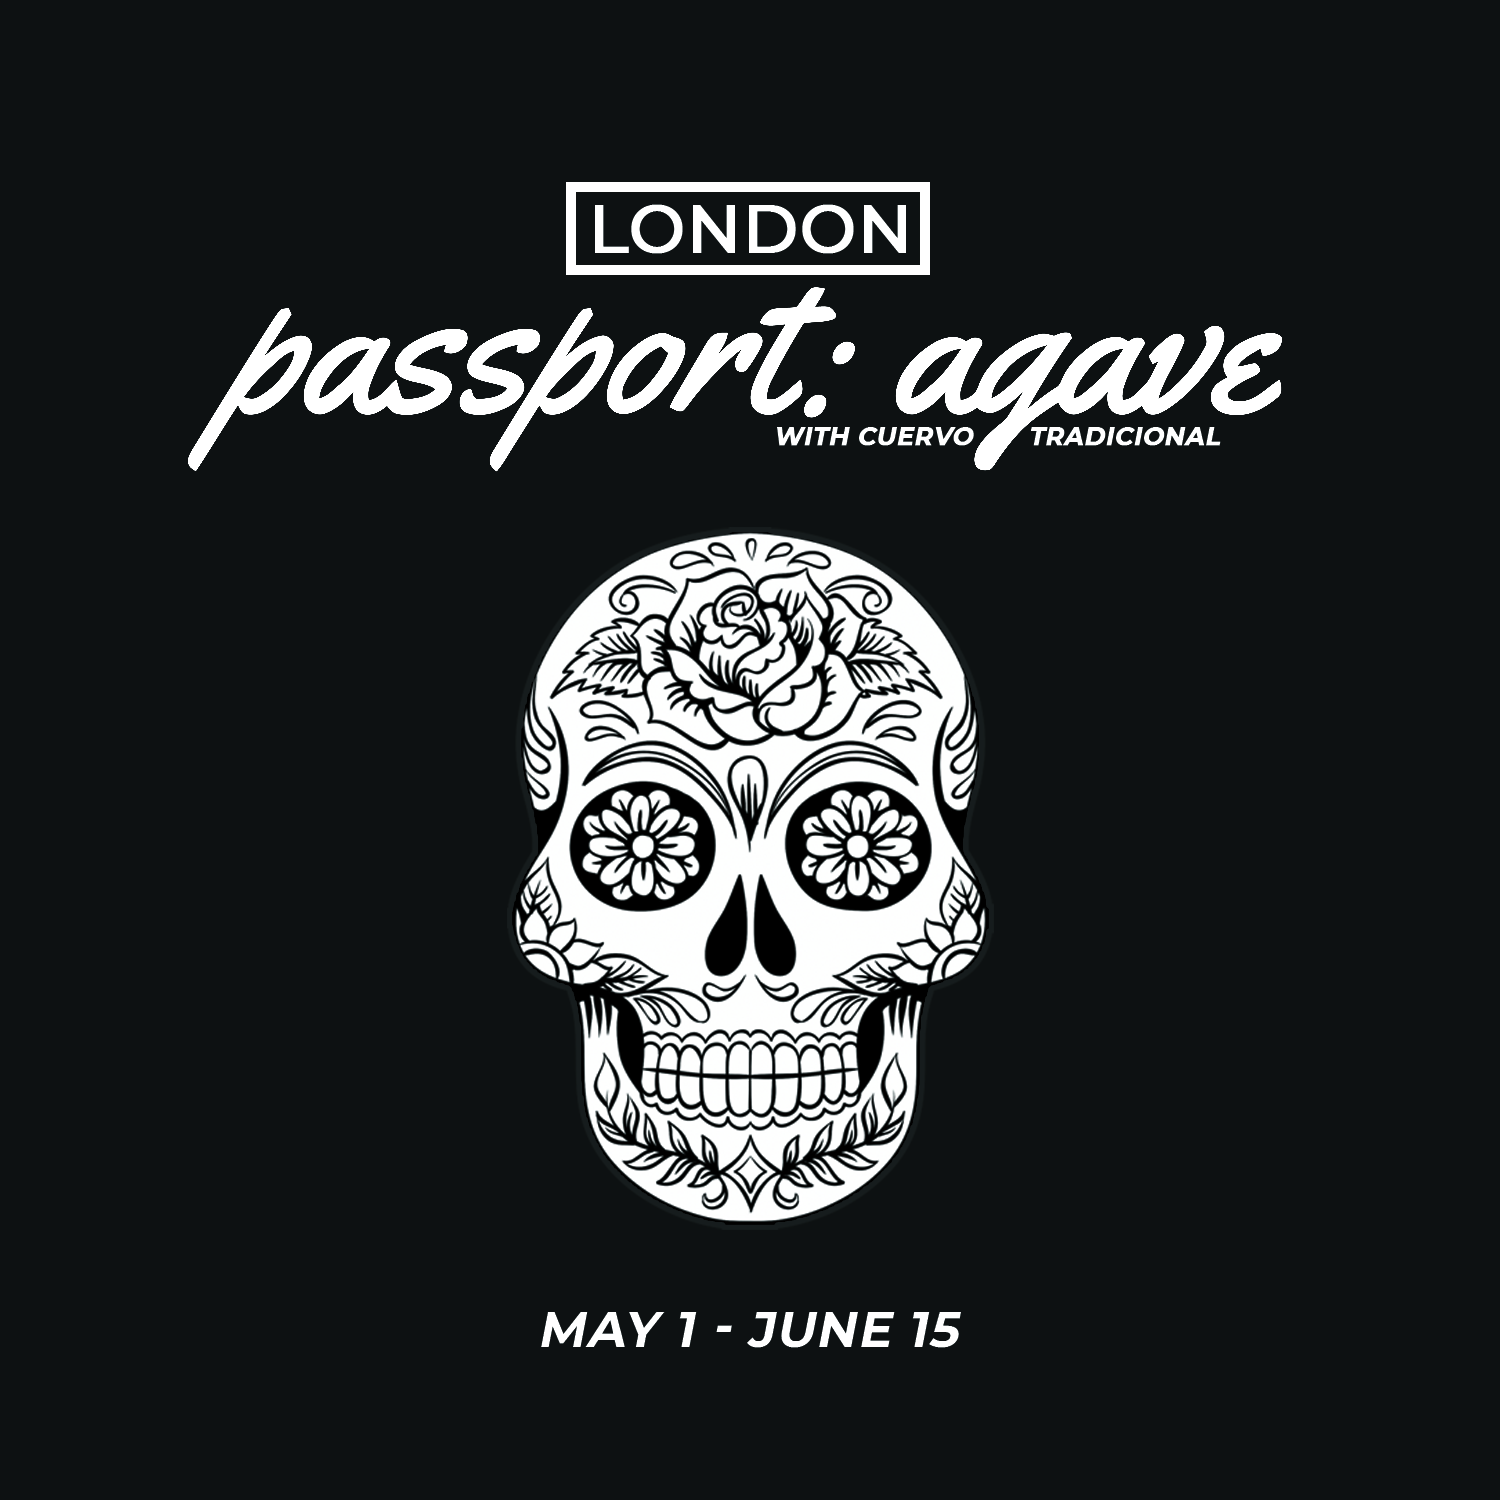 London Passport Agave